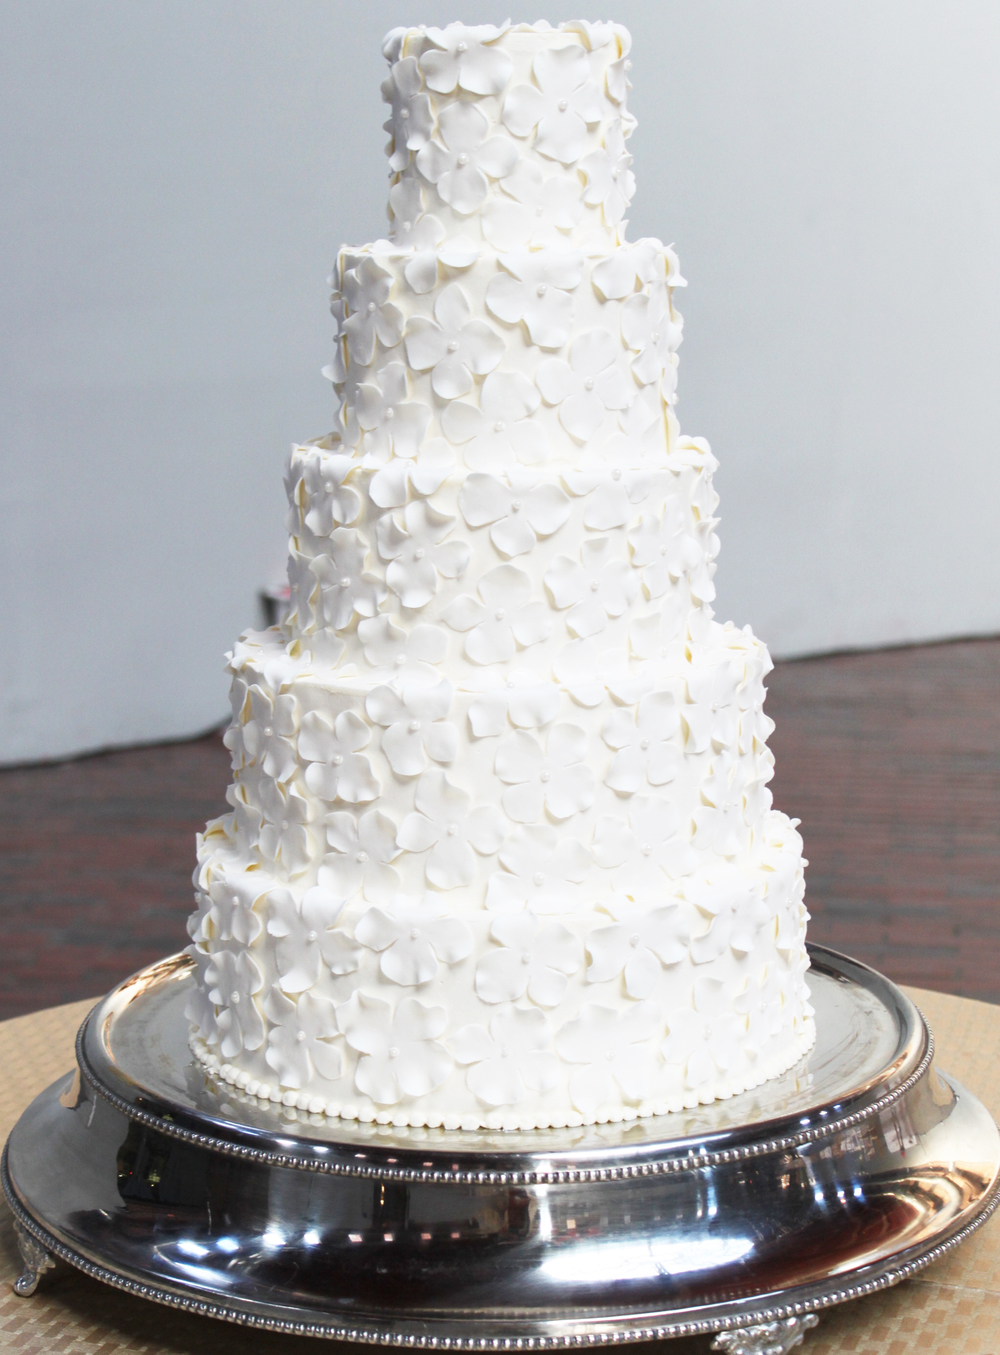 Wedding cakes bakery in massachusetts